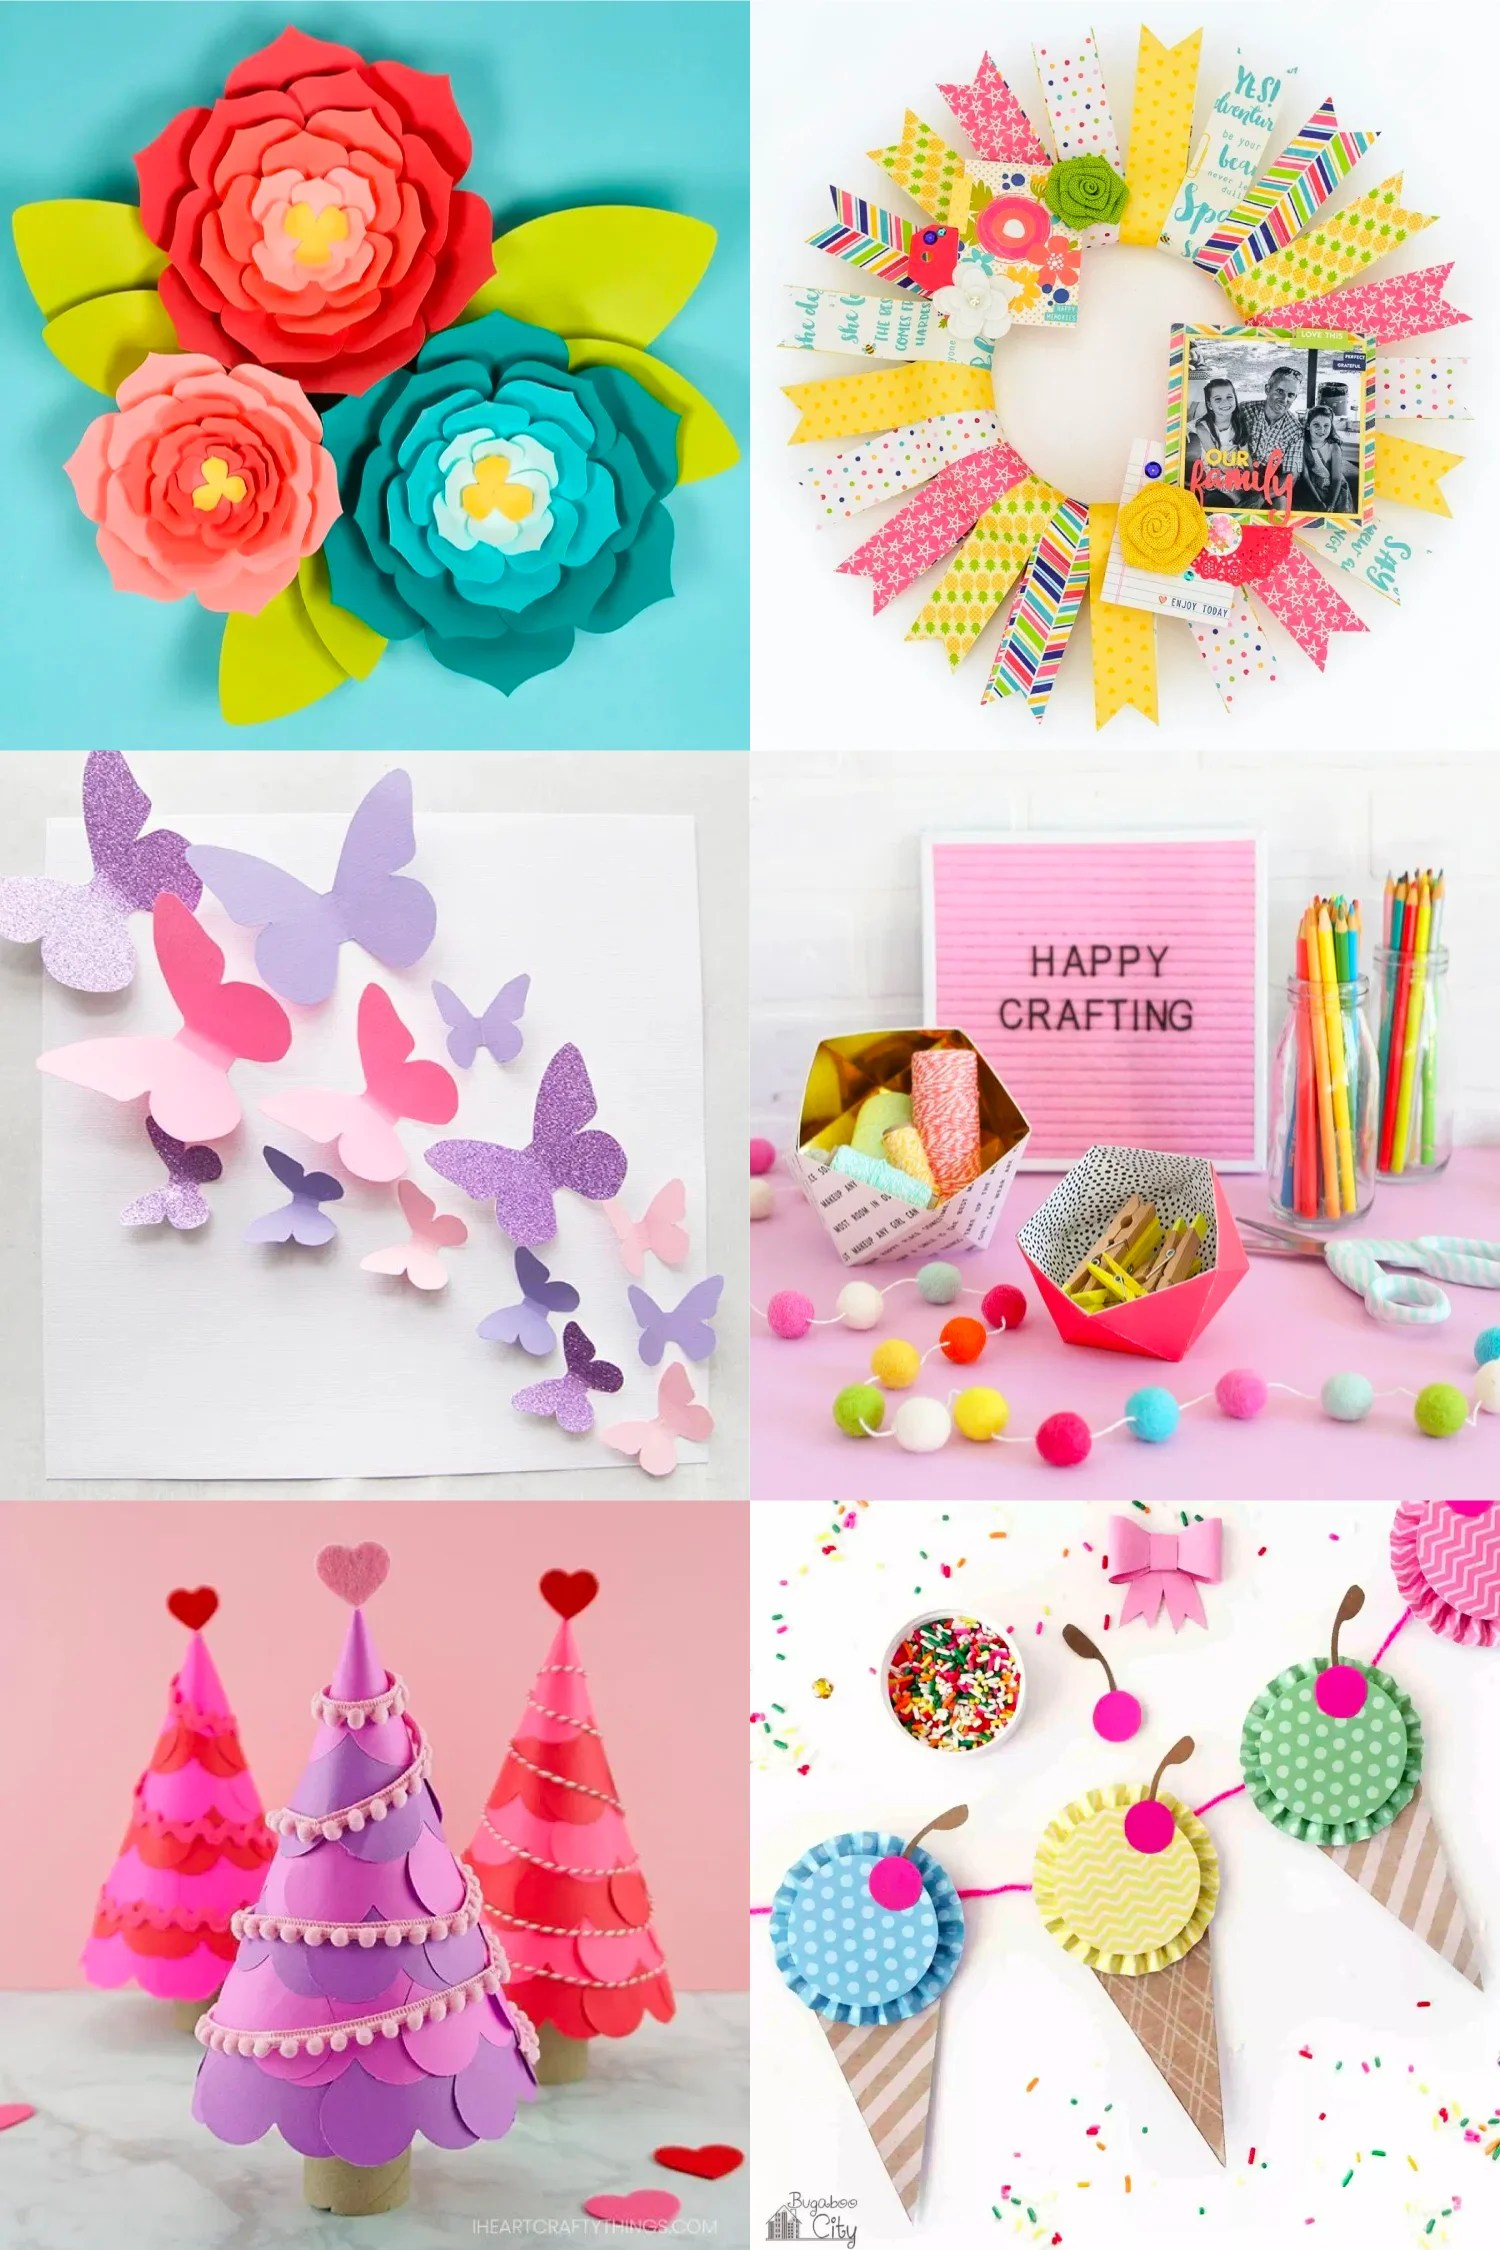 With a little paper and a pair of scissors you can make these beautiful DIY paper craft ideas! Get inspired as you see all the amazing things you can make with paper with these easy paper craft ideas!